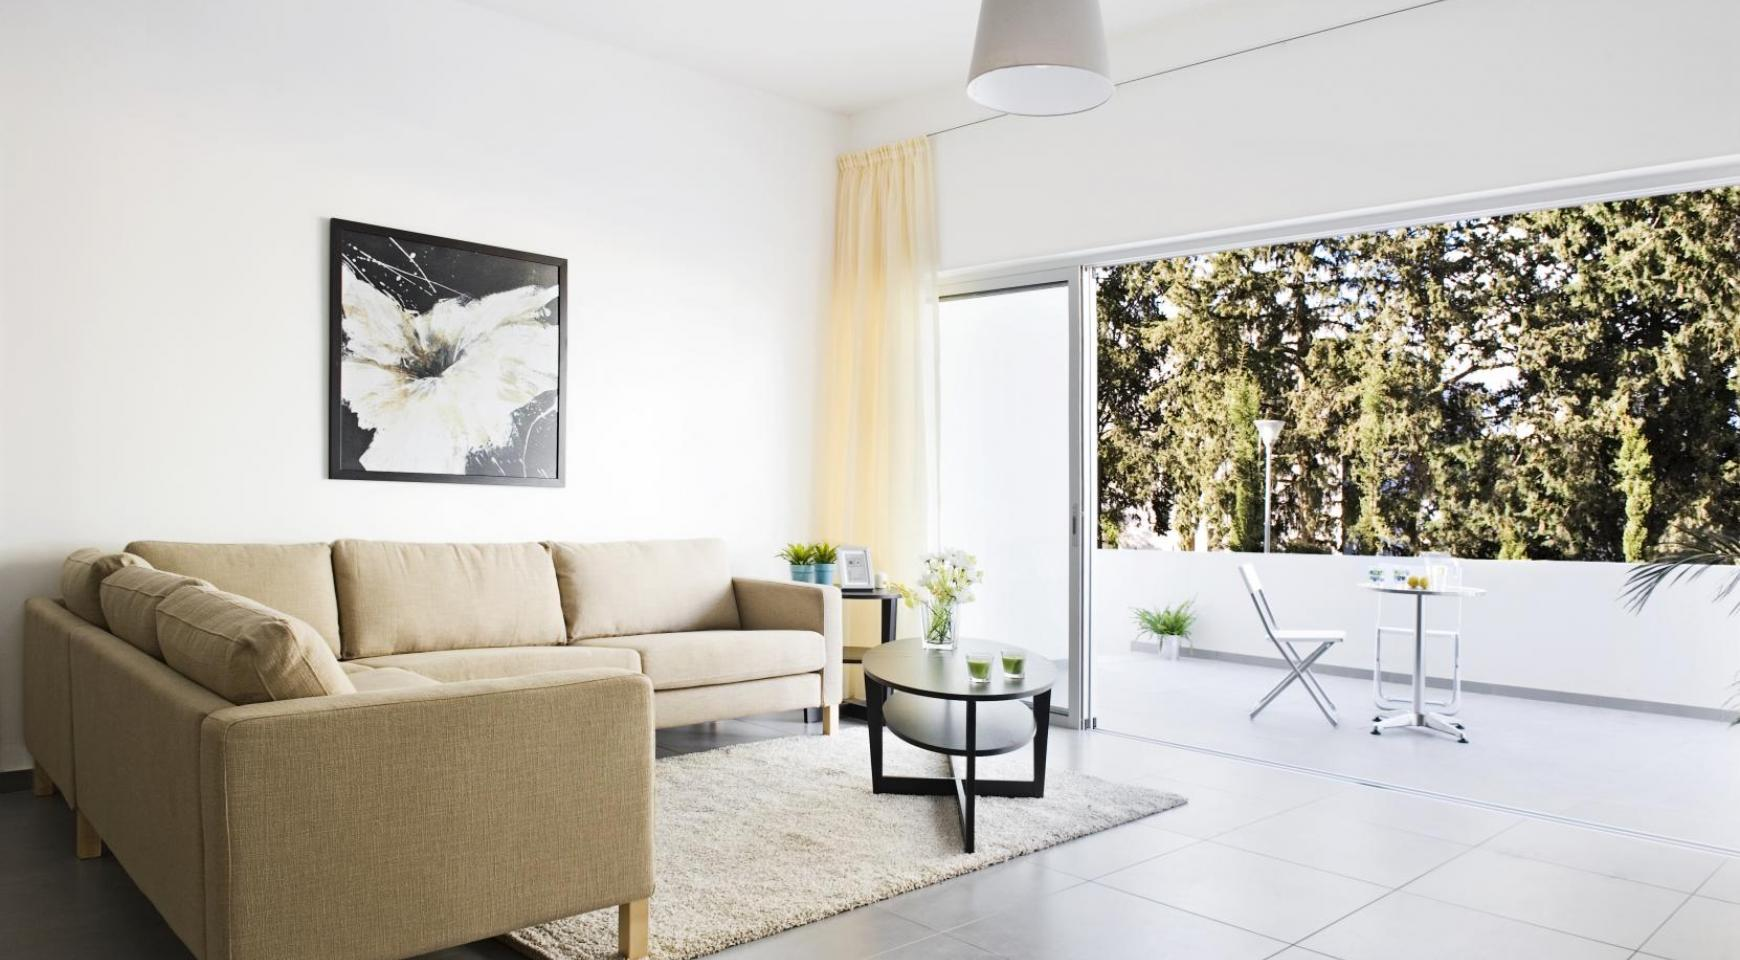 Contemporary 3 Bedroom Apartment in Aglantzia Area - 11